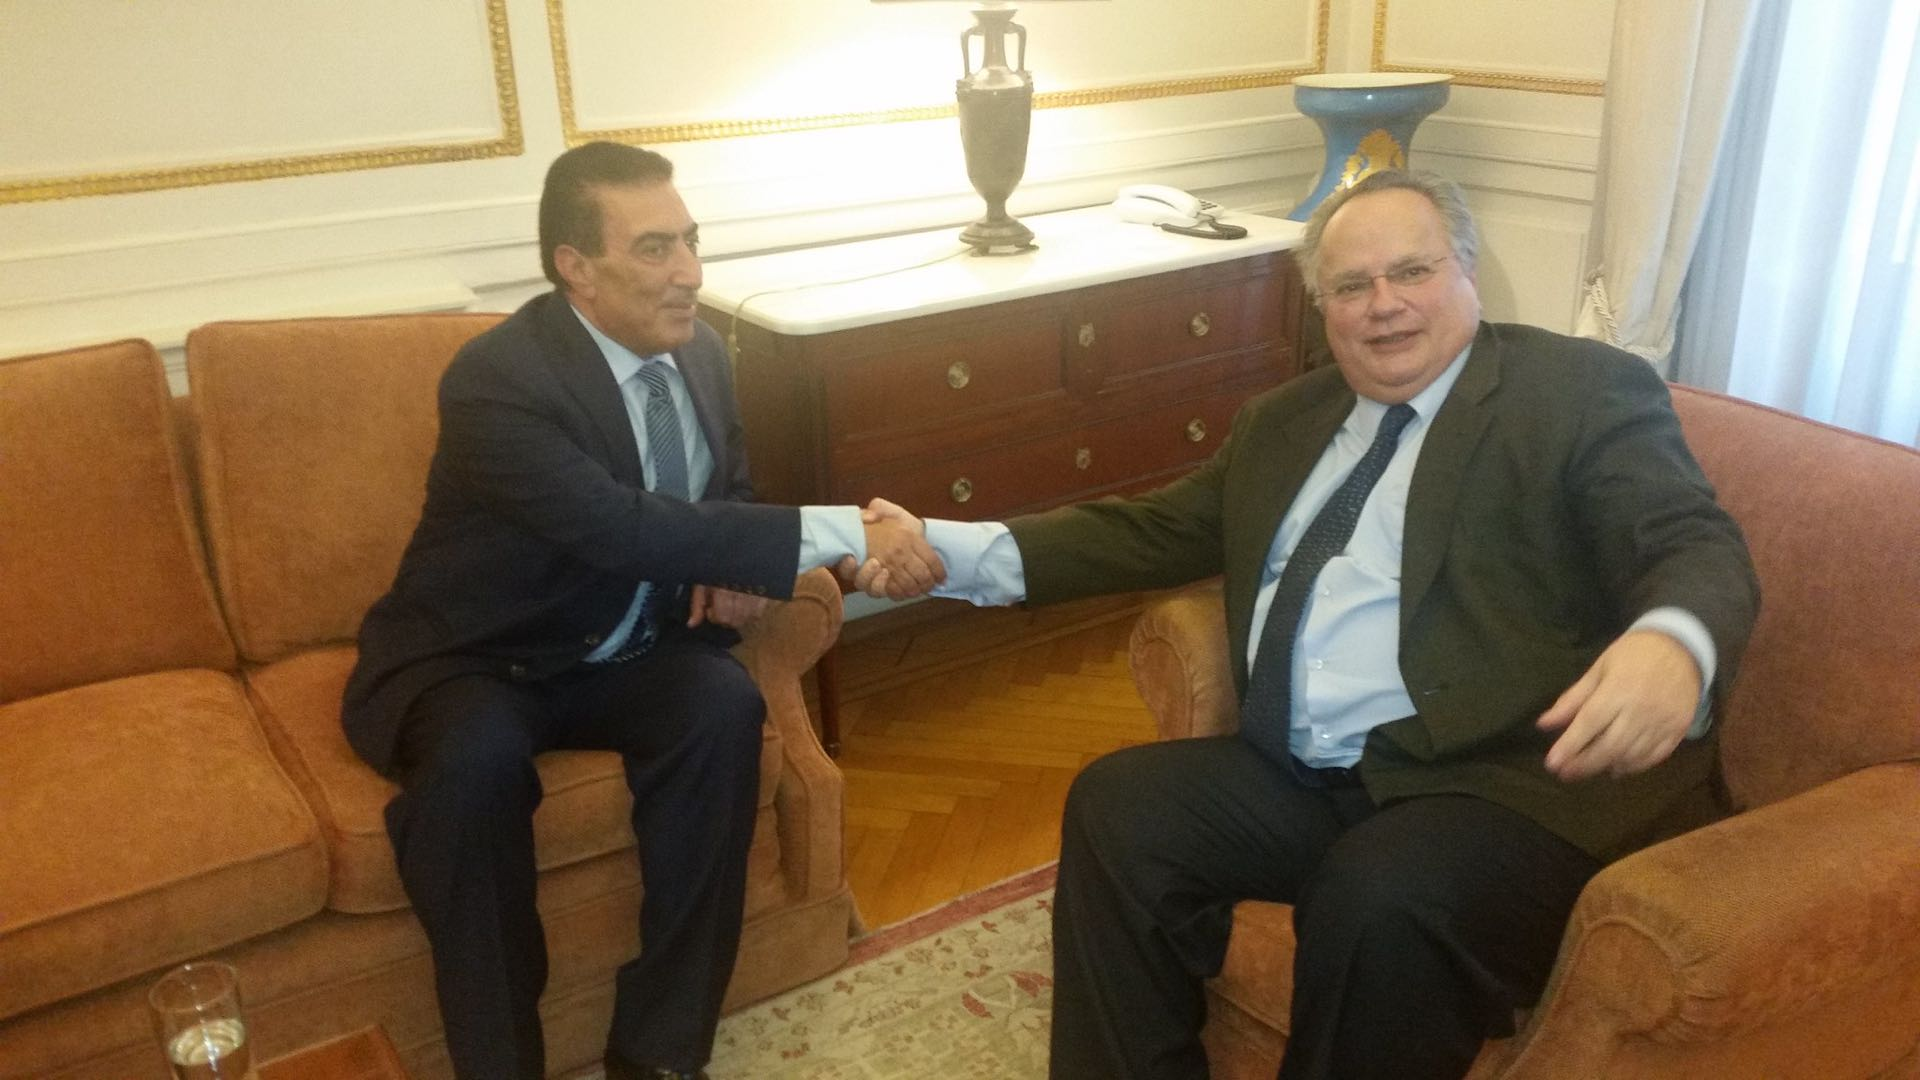 Atef Tarawneh, left, shakes hands with Greece's then-Minister of Foreign Affairs Nikus Kotzias on March 3, 2016. Credit: Hellenic Ministry of Foreign Affairs